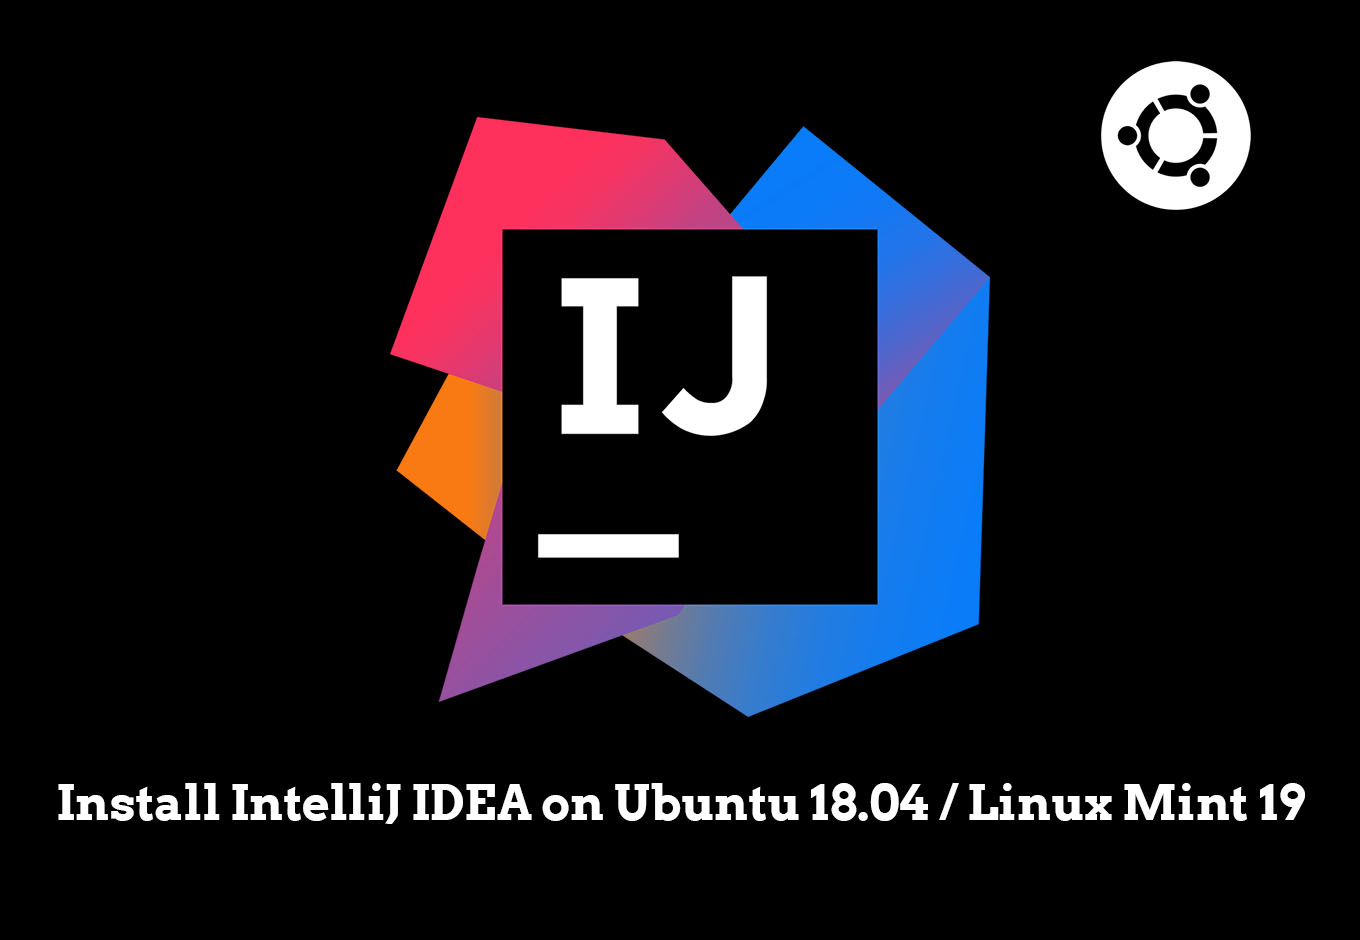 How To Install IntelliJ IDEA on Ubuntu 18 04 / Linux Mint 19